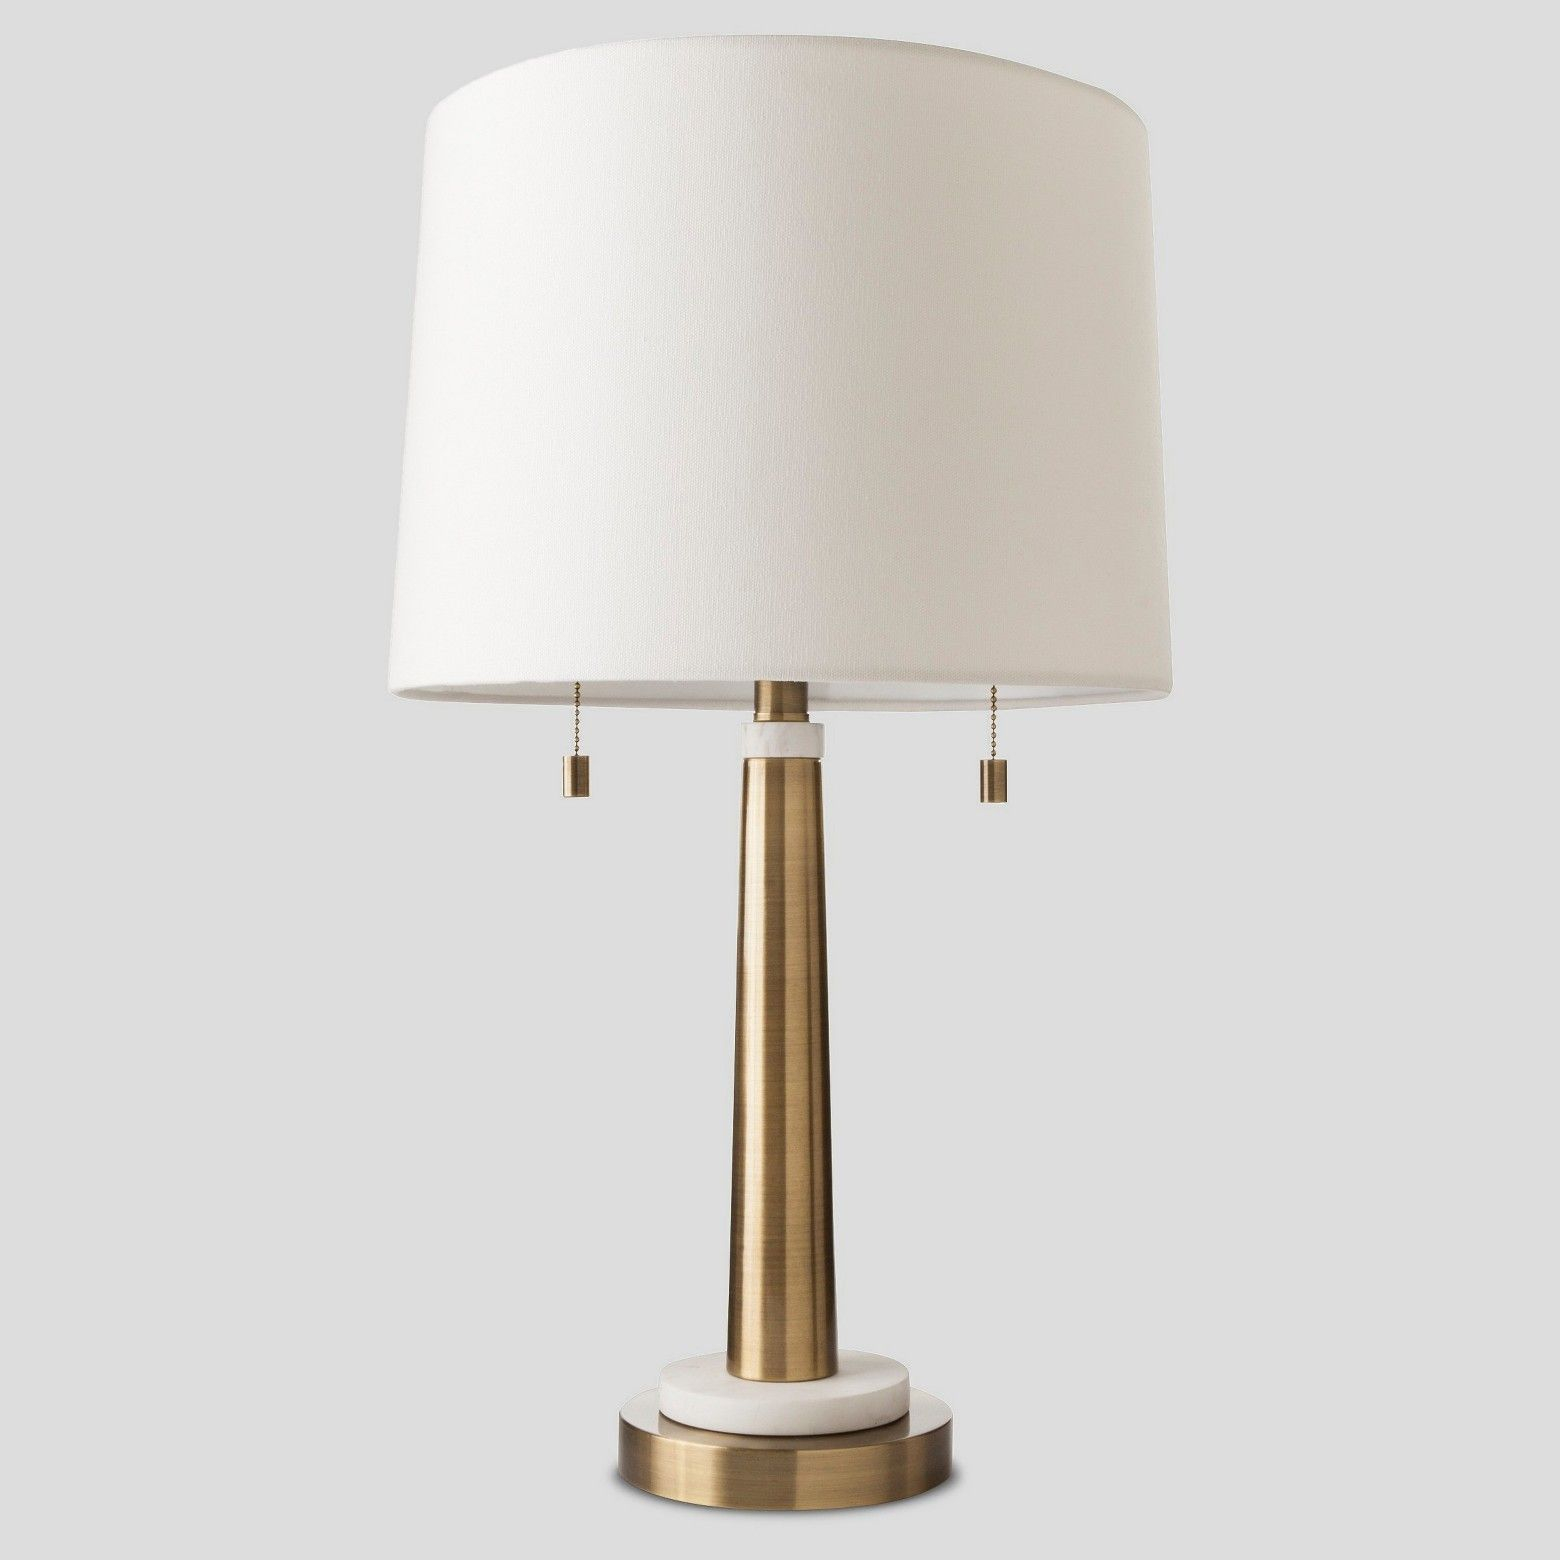 Light Up Your Space With The Mid Century Modern Style Of The in size 1560 X 1560